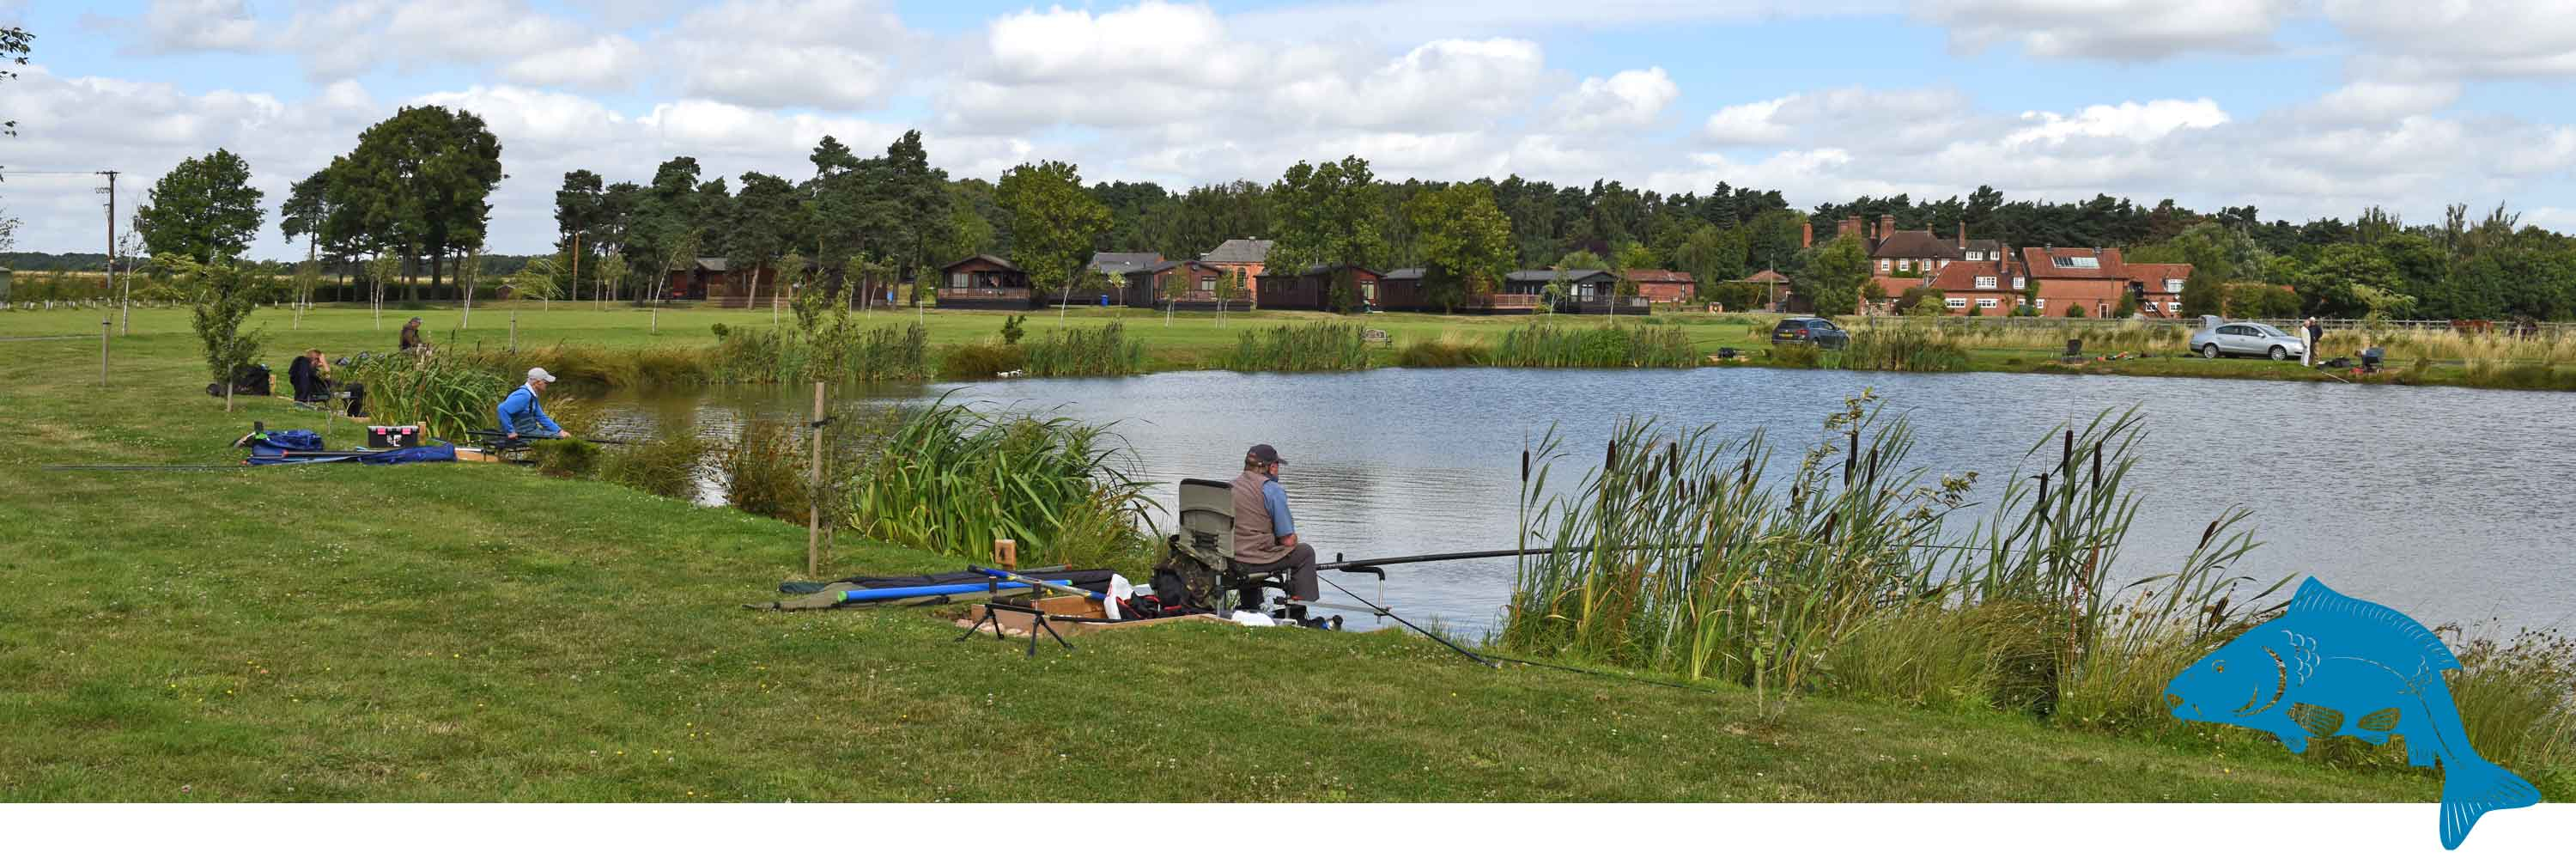 Mirror and Common Carp Fishing, Bevercotes, Newark, Notts